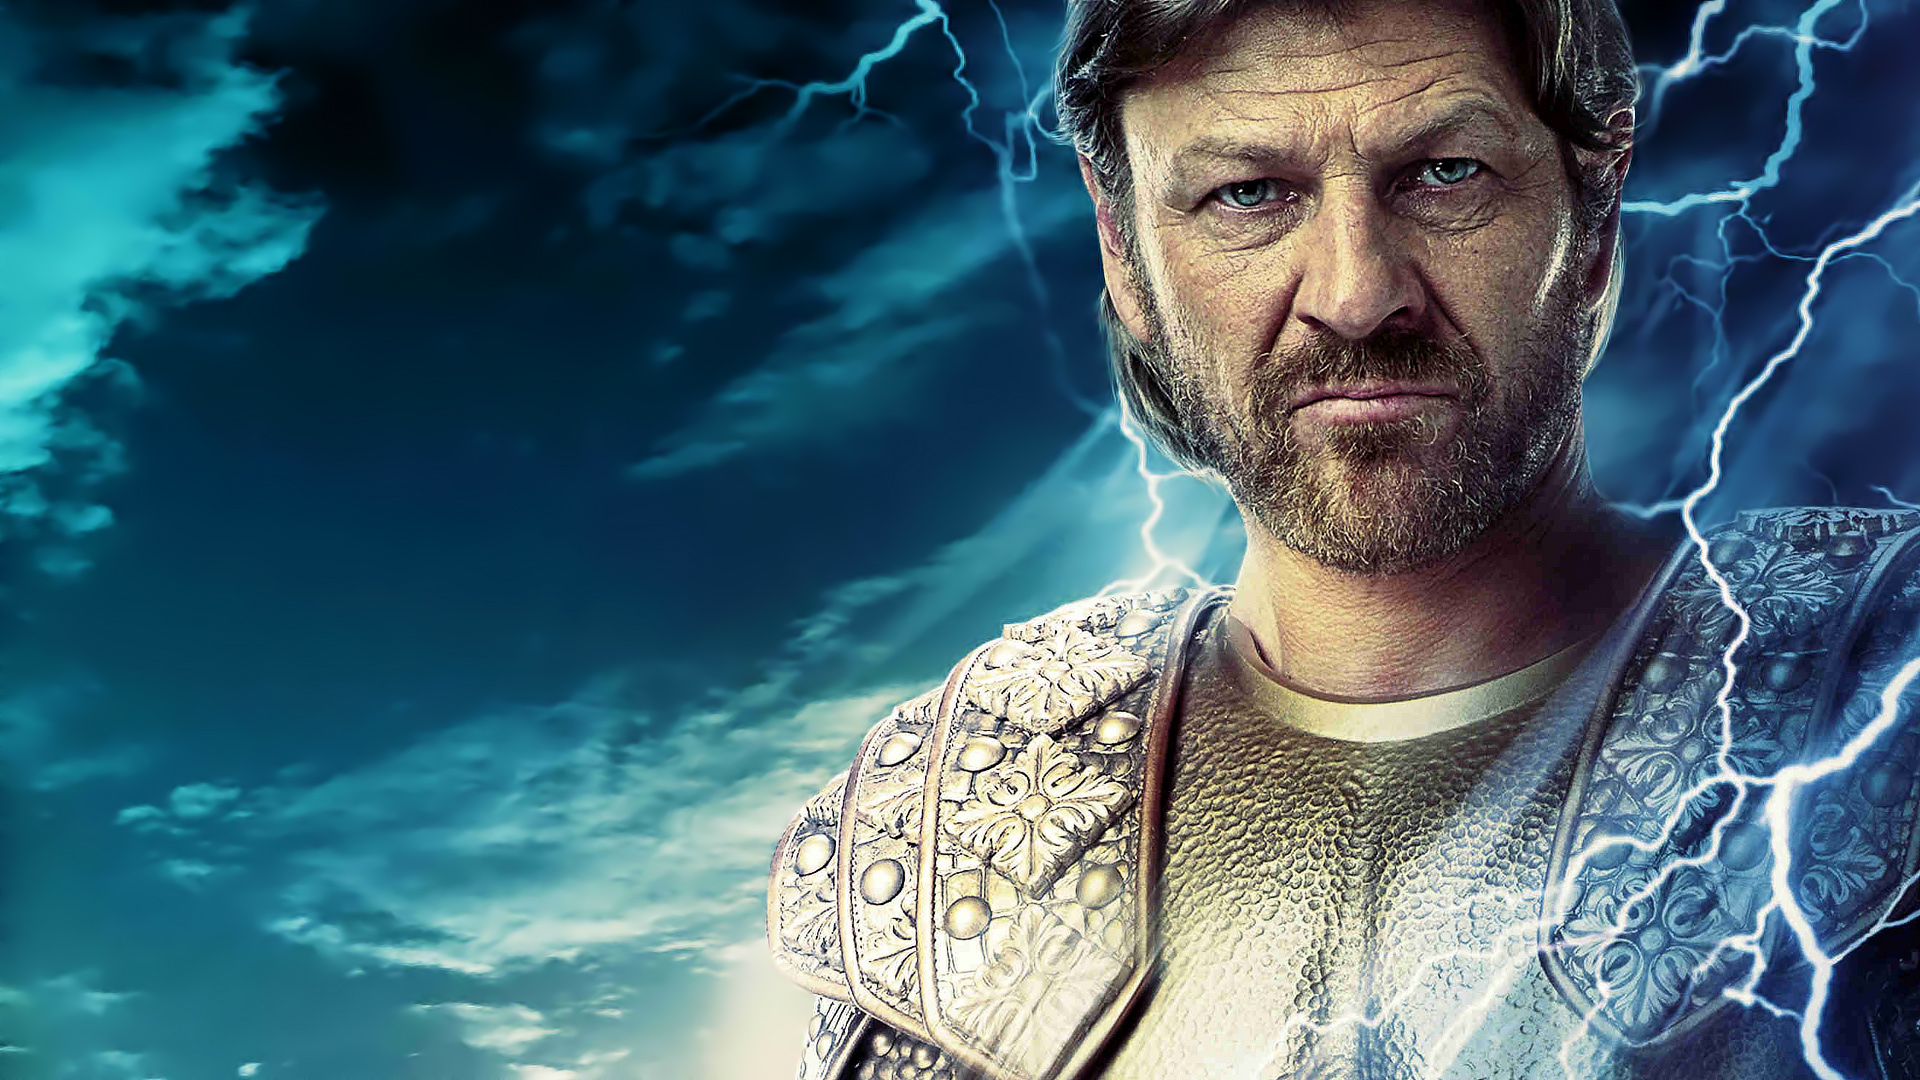 Desktop wallpaper percy jackson the olympians the lightning thief wallpaper percy jackson the olympians the lightning thief movie sean bean voltagebd Image collections